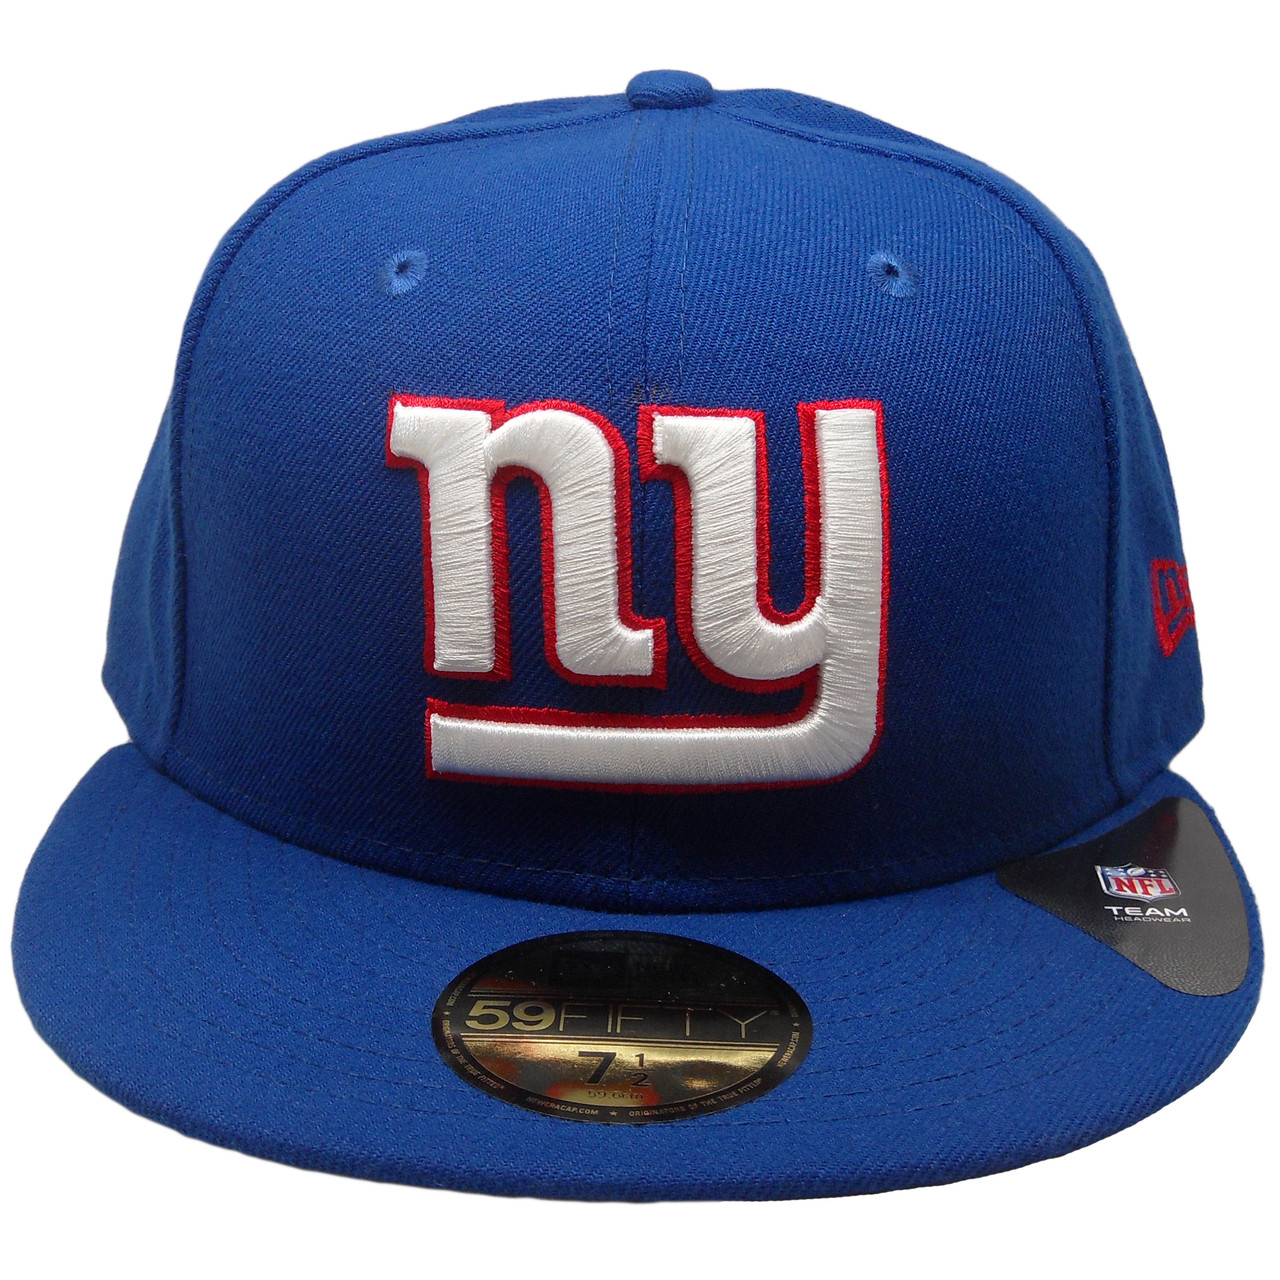 New York Giants New Era 59Fifty Onfield Fitted Hat - Royal Blue ... 85bd8c486